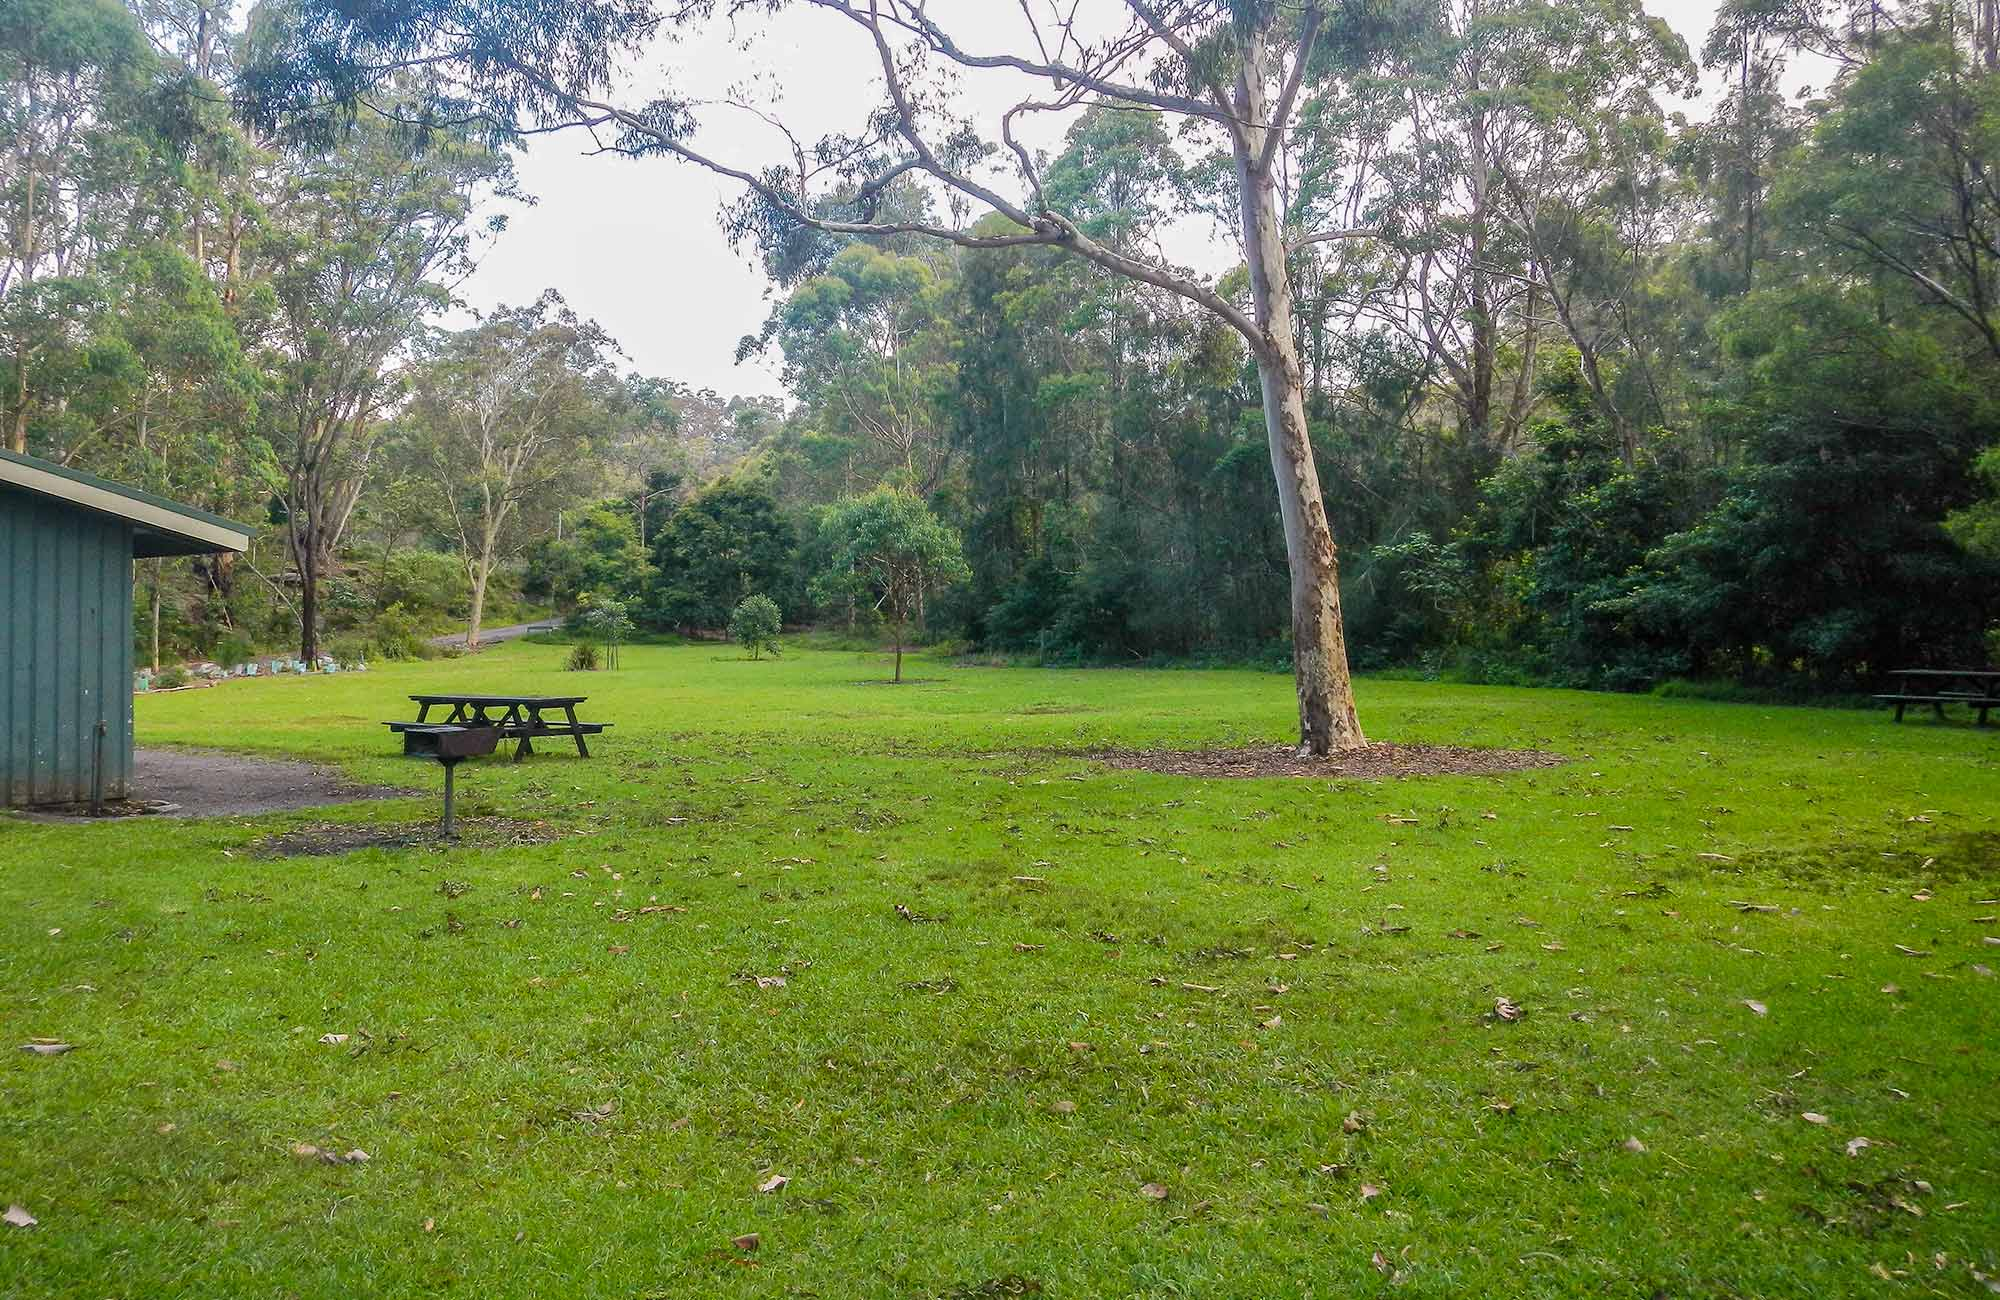 Haynes Flat picnic area, Lane Cove National Park. Photo: Debbie McGerty